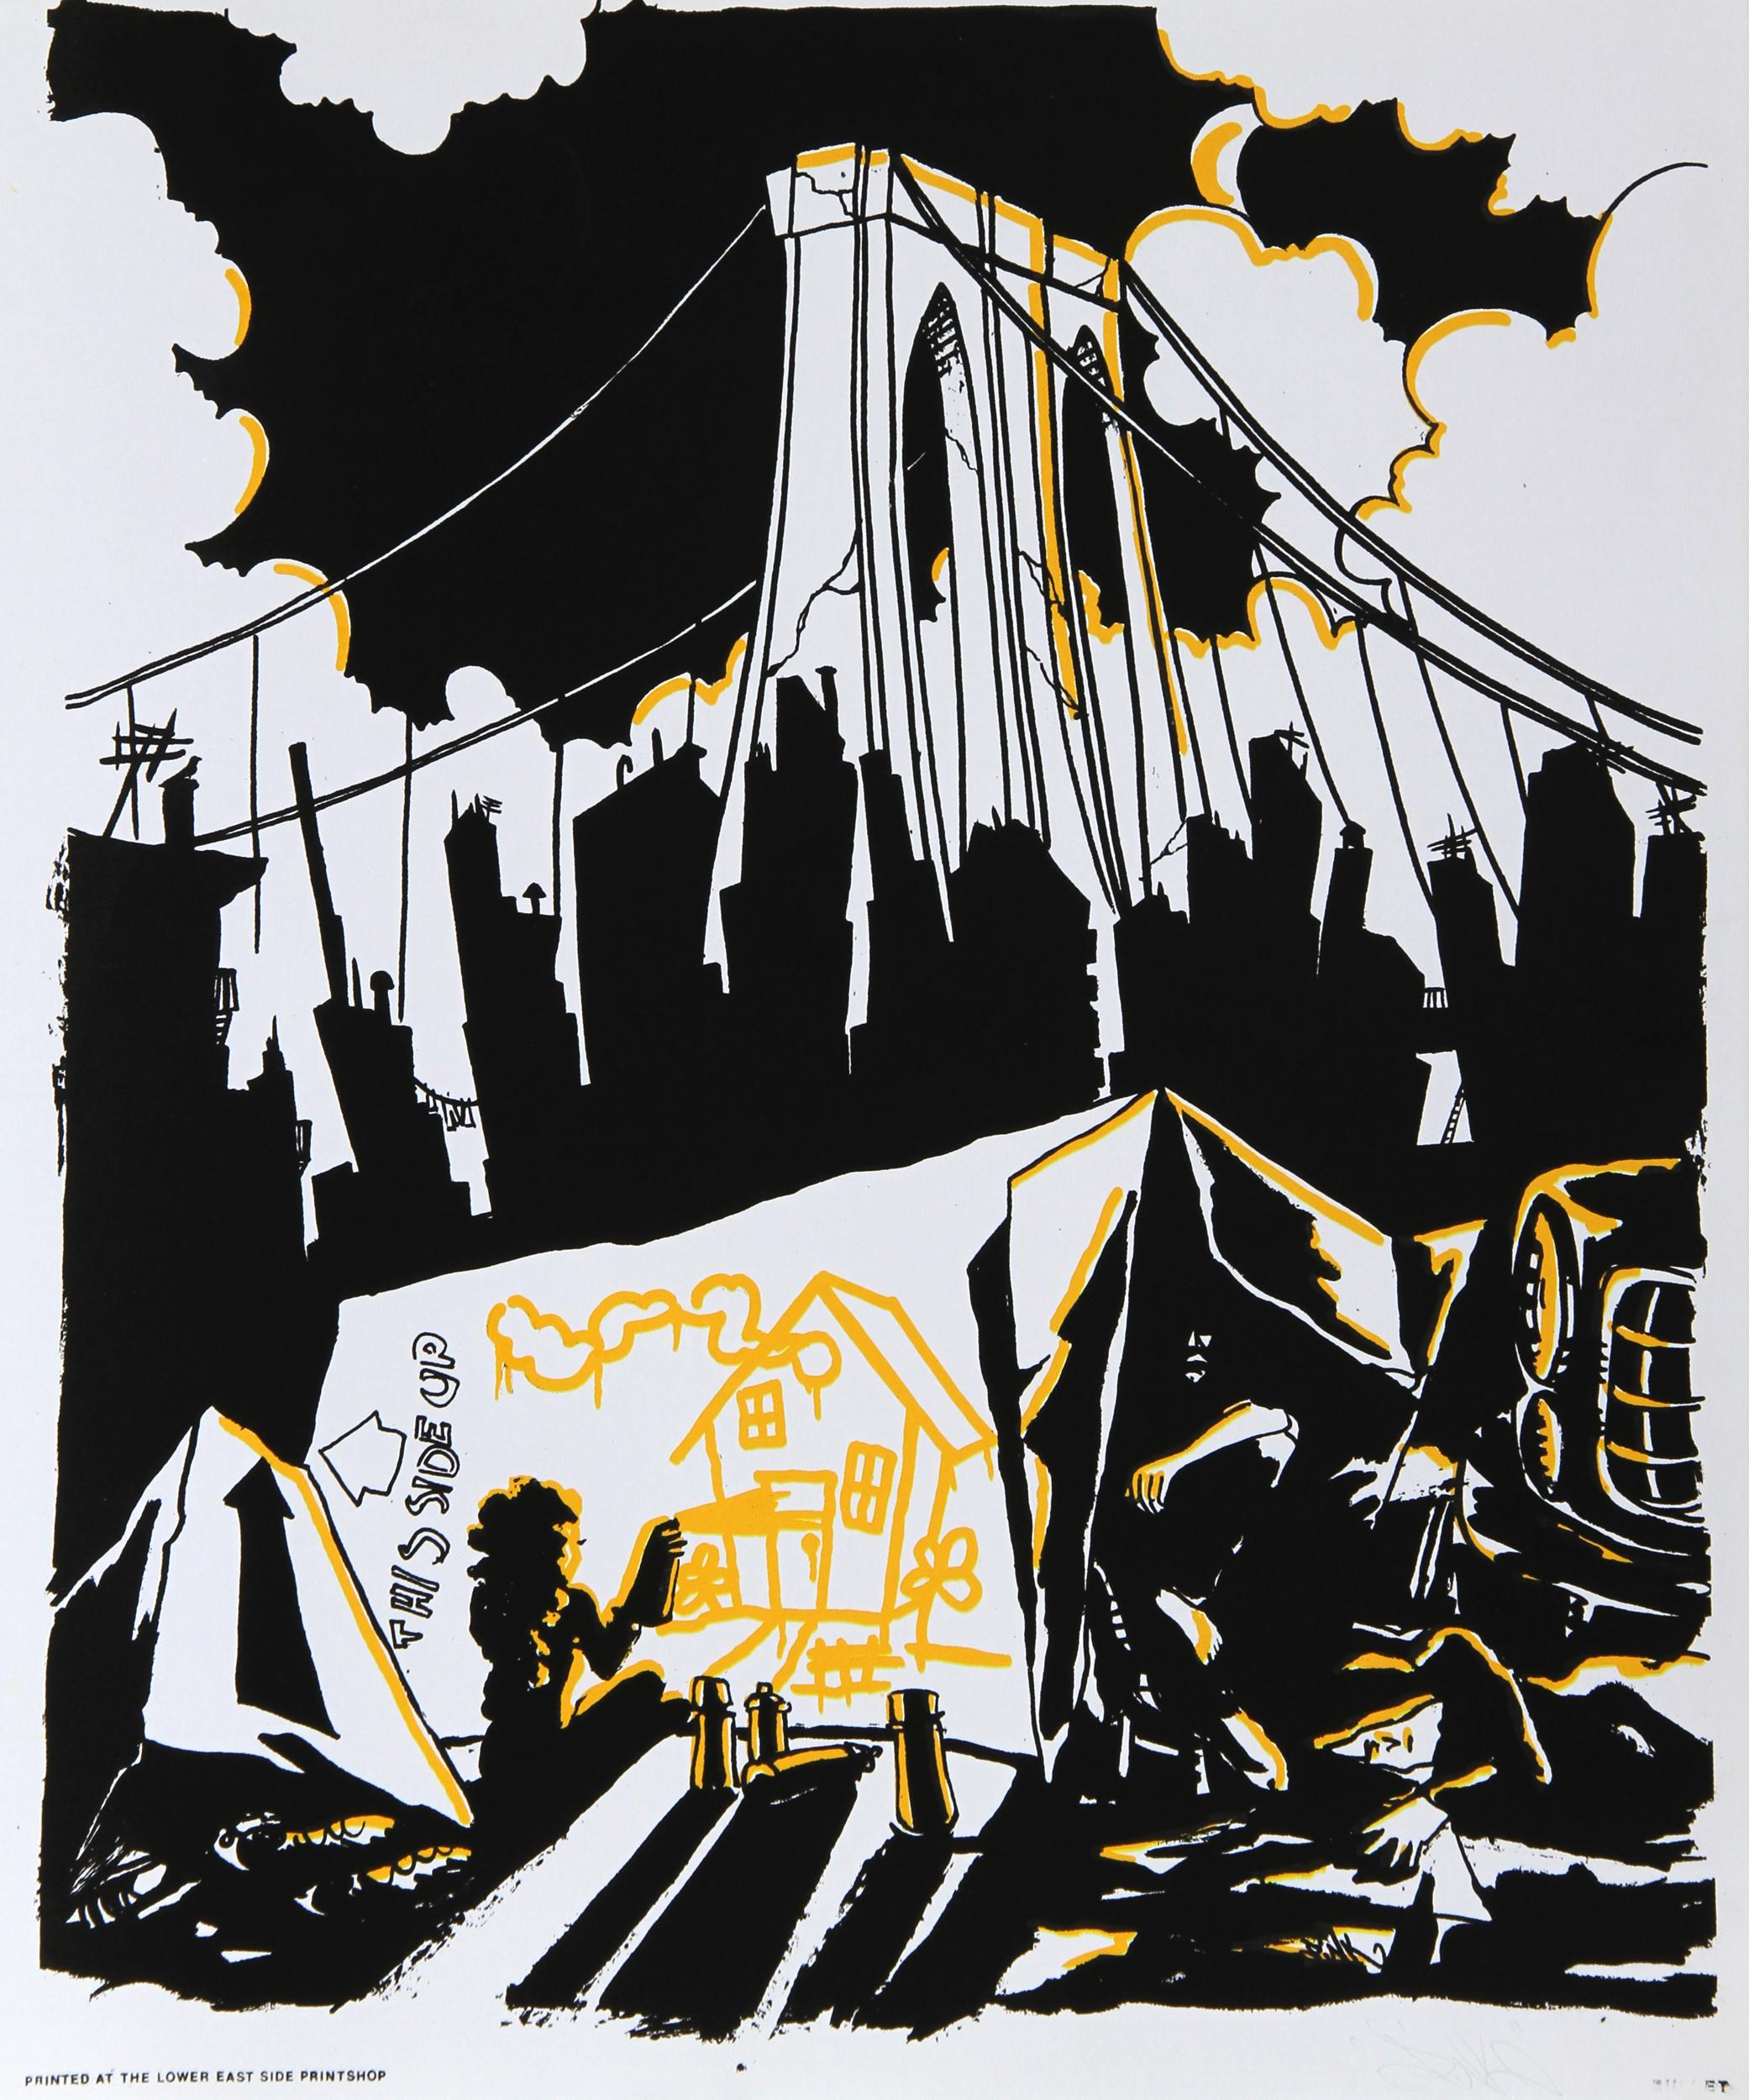 Lady Pink, Under the Brooklyn Bridge from Bullet Space, Your House is Mine, Silkscreen